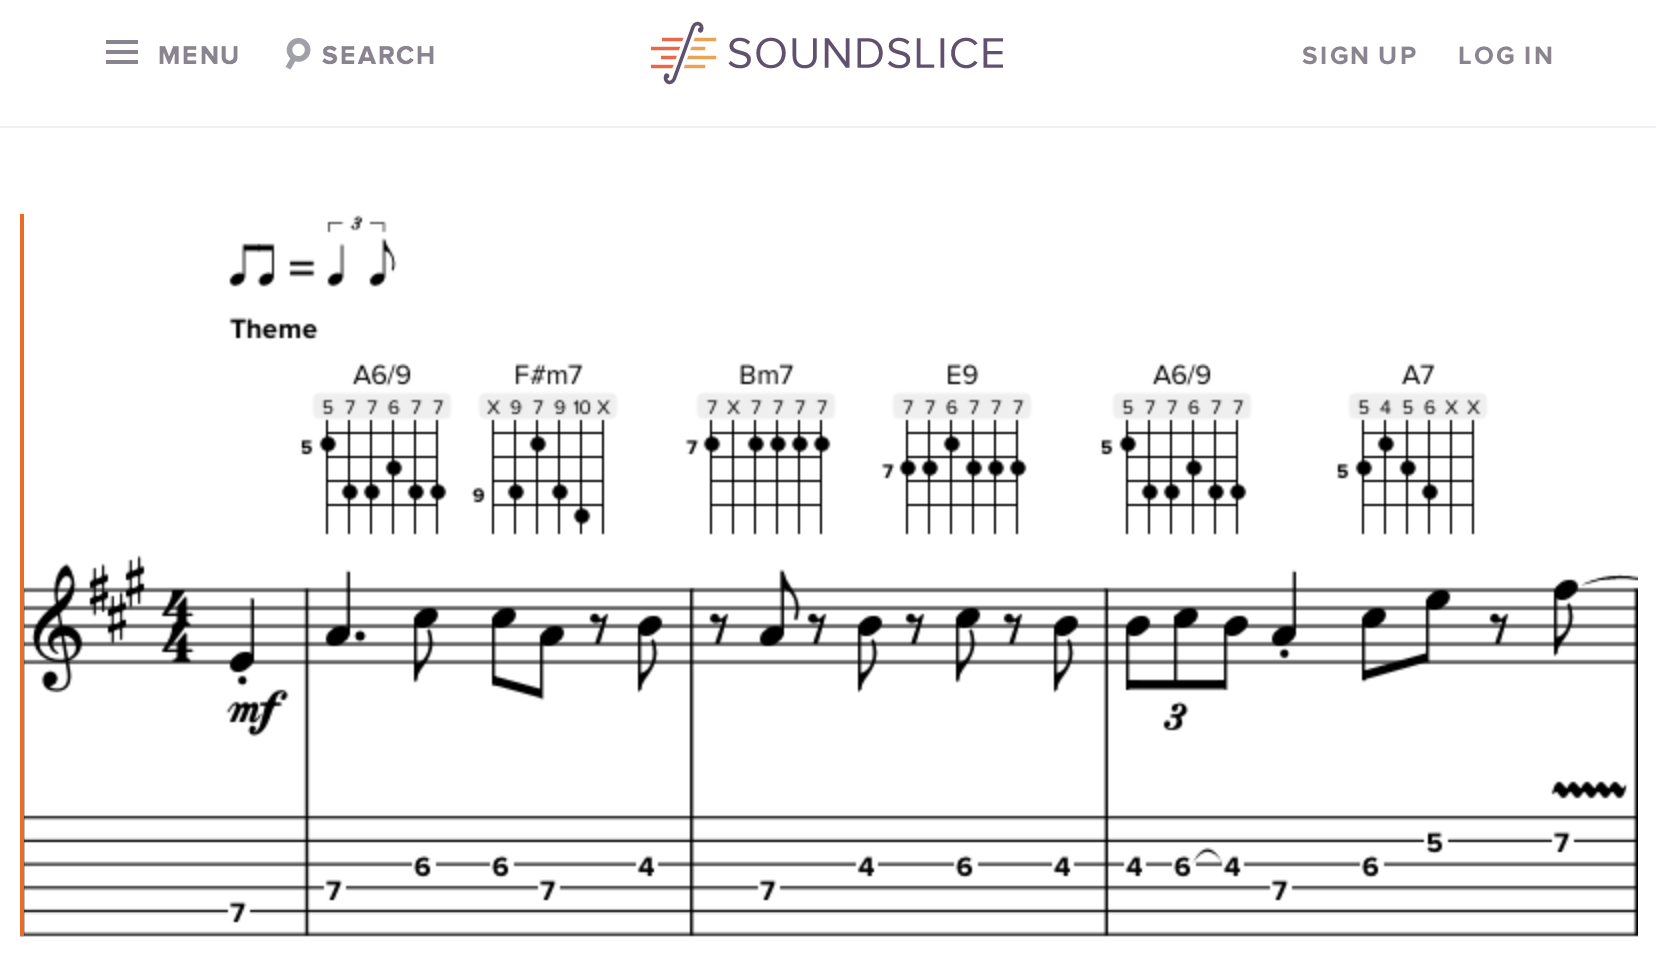 how to make an anacrusis half a note in musescore